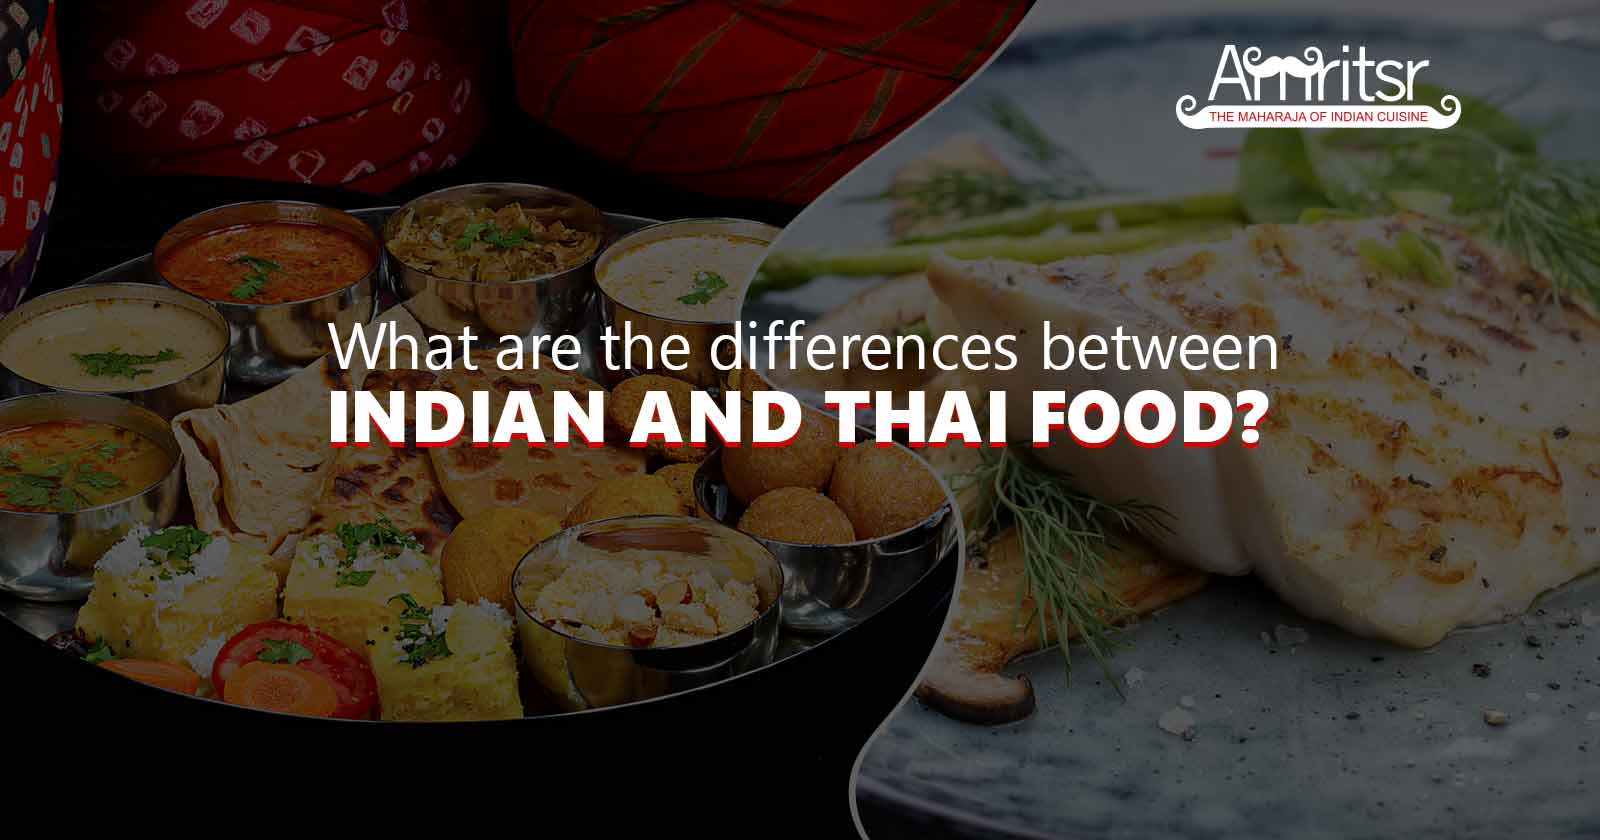 Difference Between Indian and Thai Food